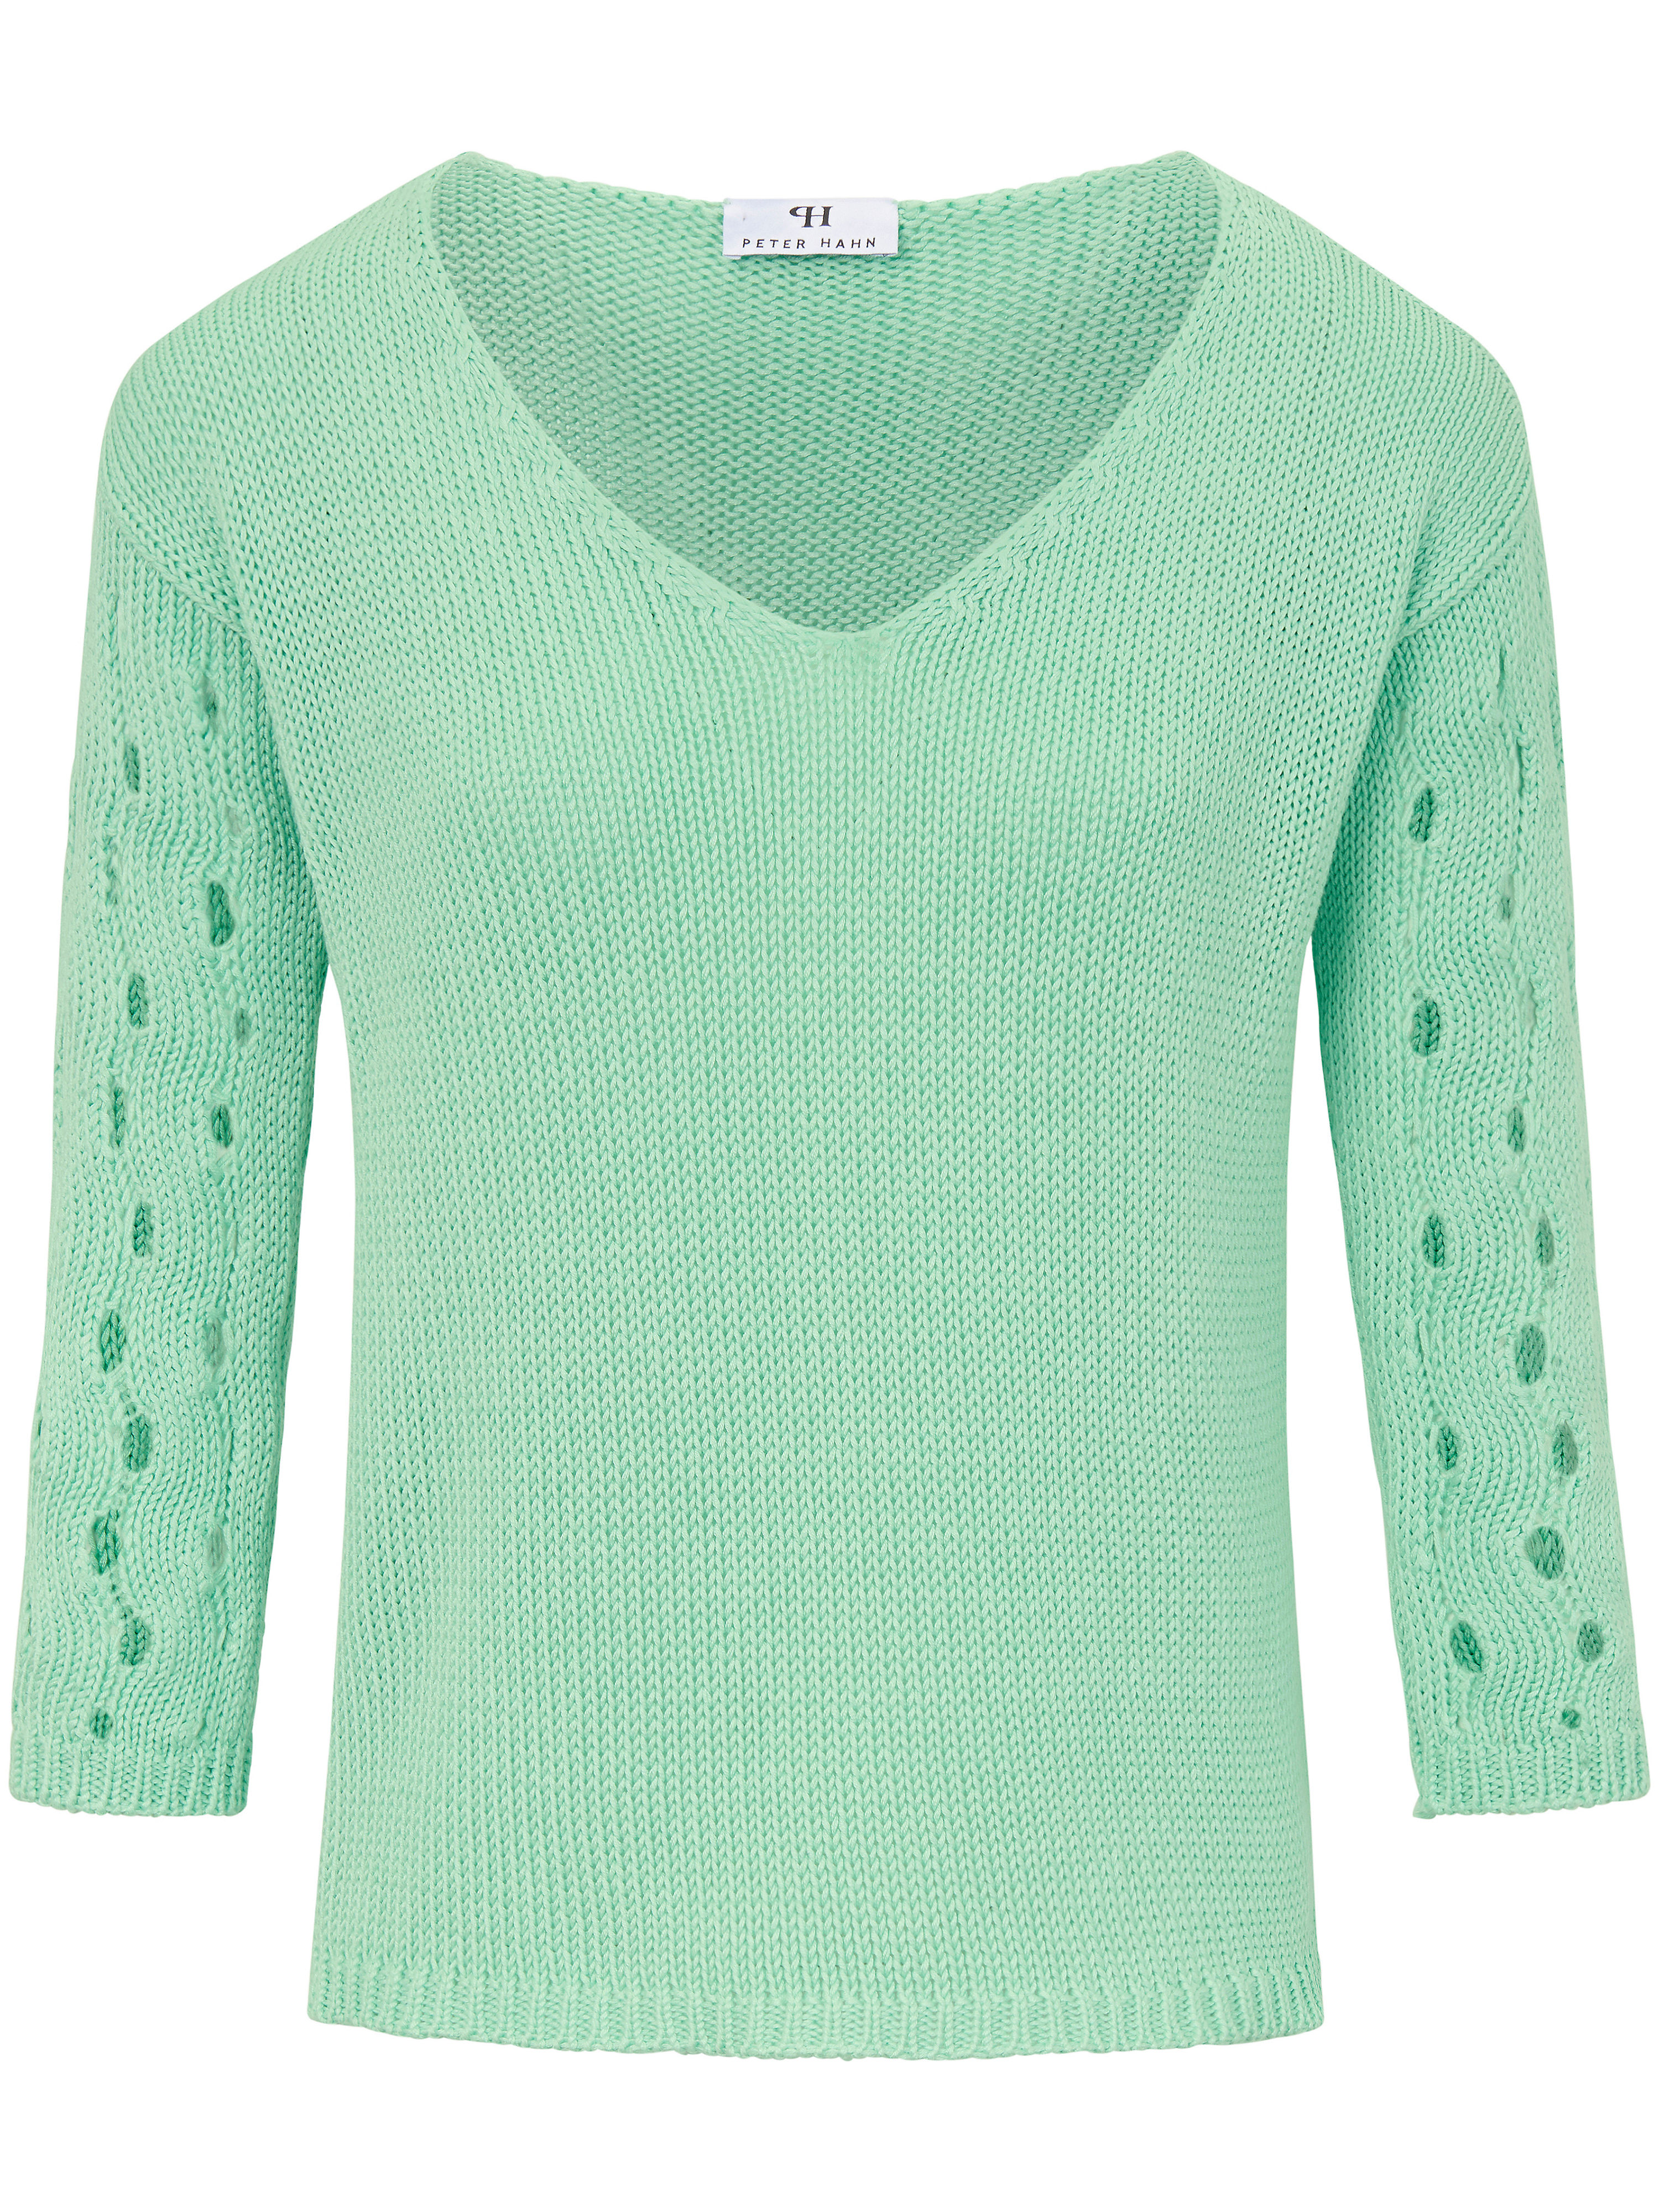 Le pull 100% coton manches 3/4  Peter Hahn vert taille 46